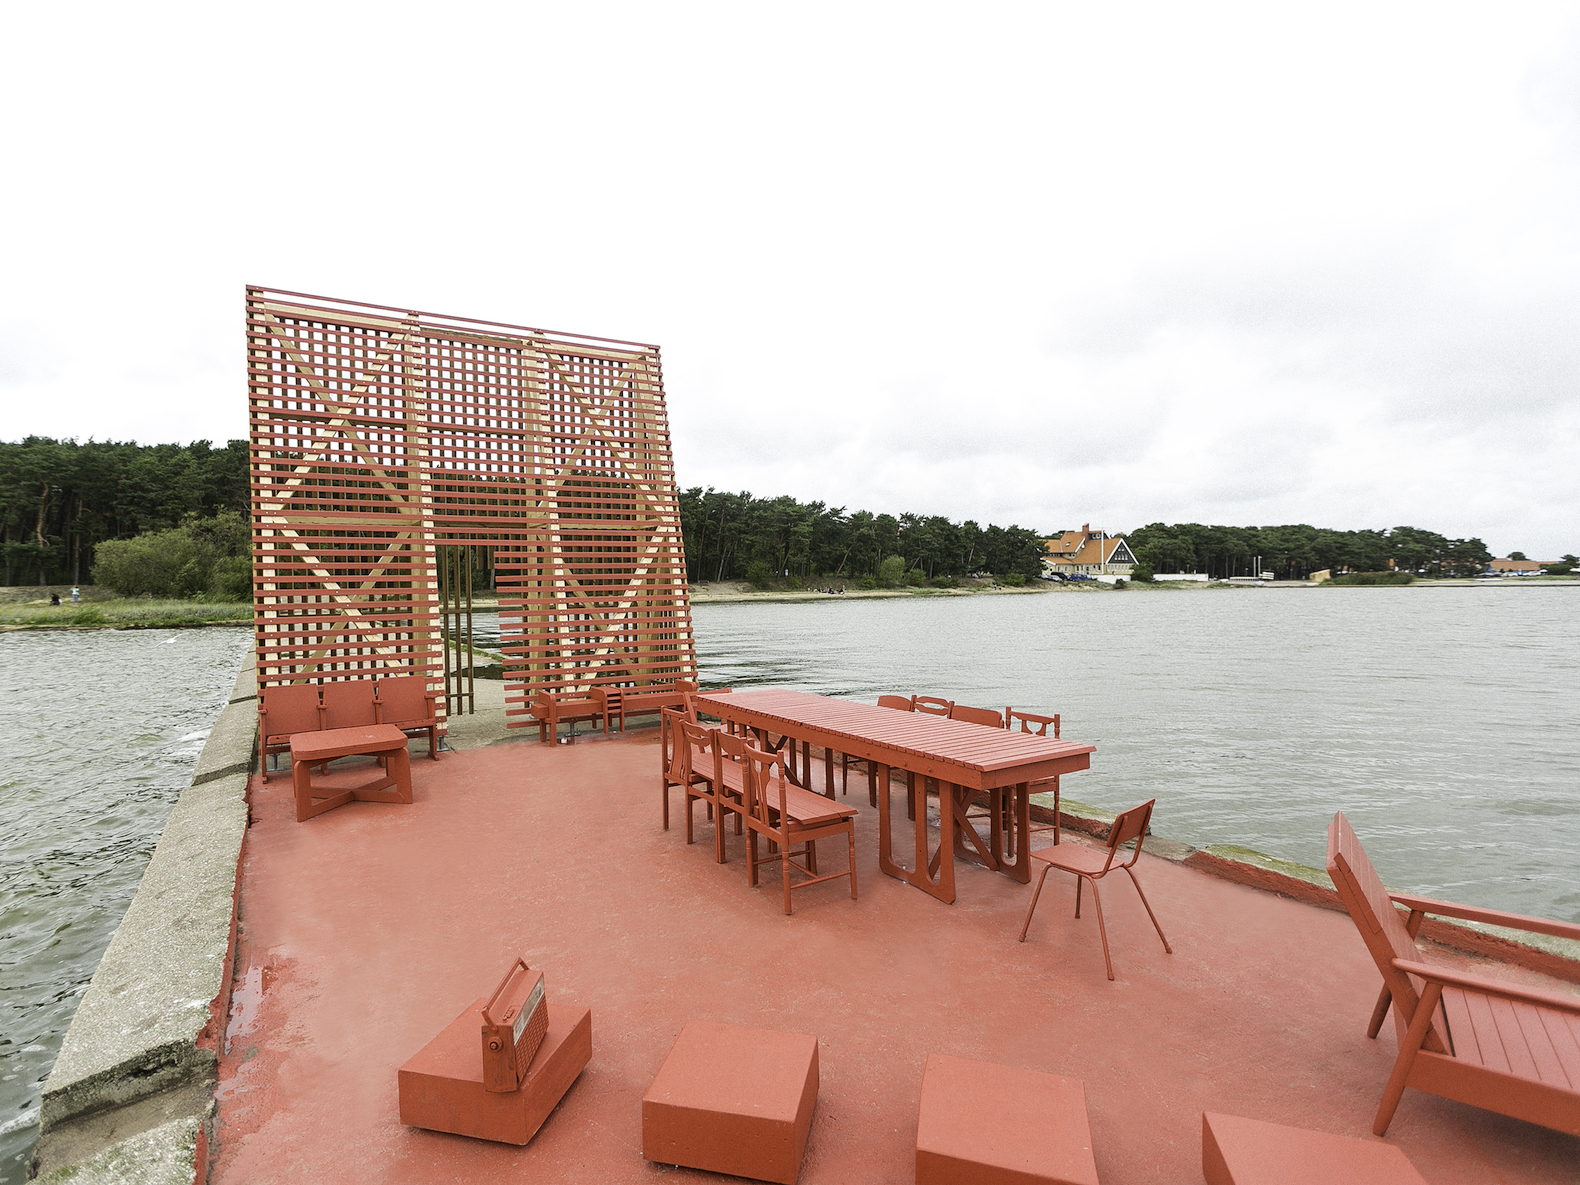 A Living Room With Soviet Era Furniture Just Popped Up In Lithuanian Lagoon